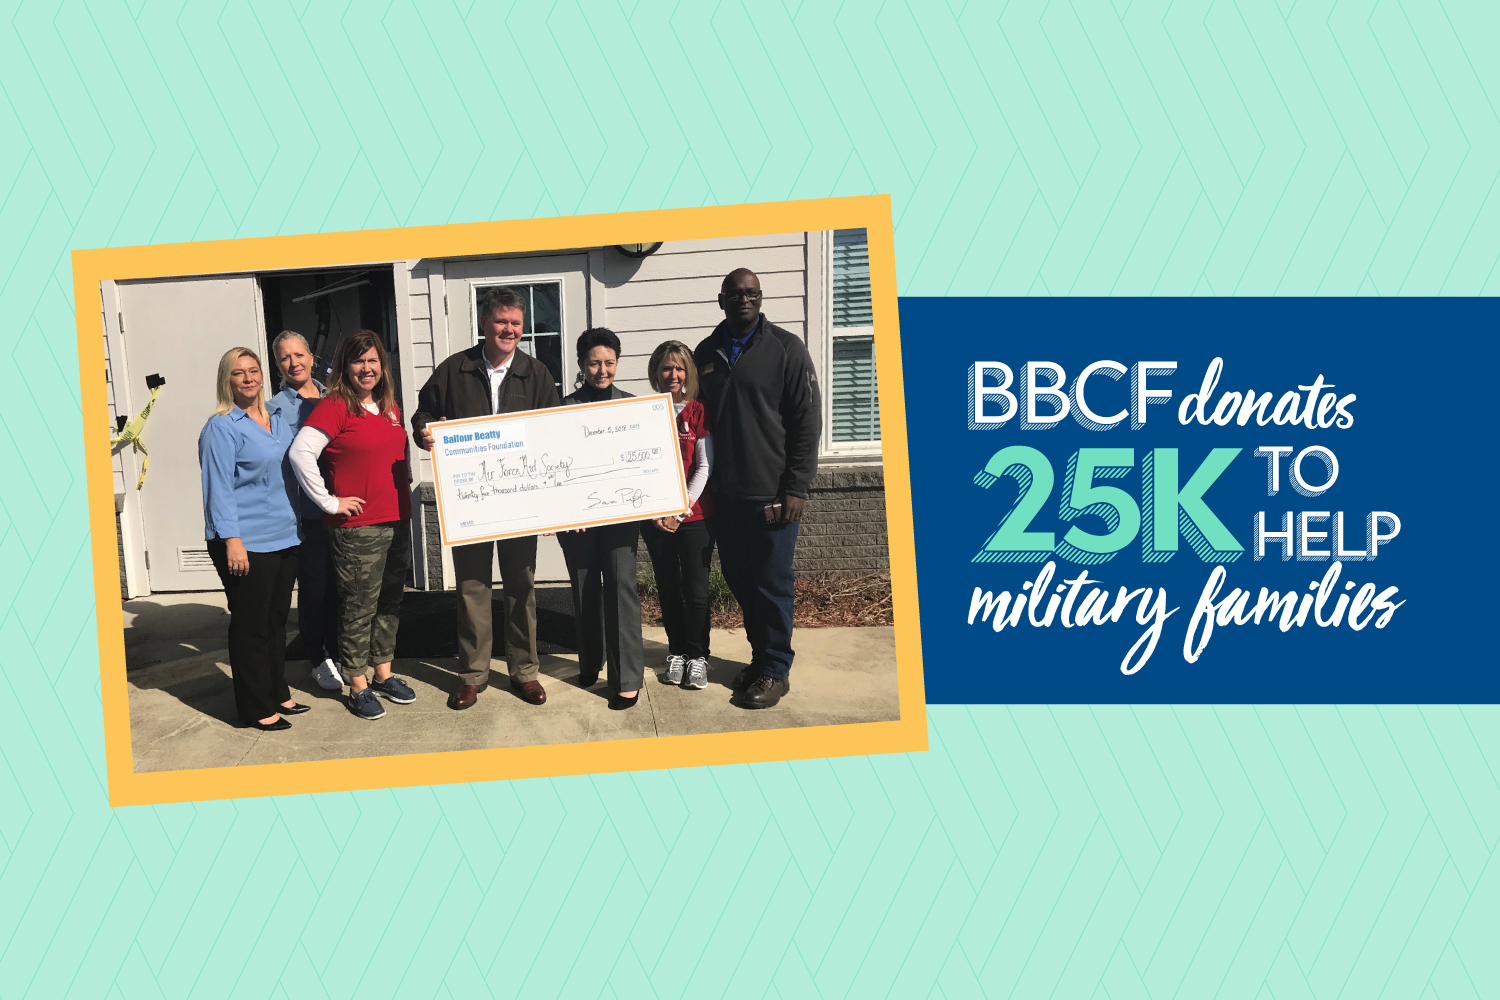 Balfour Beatty Communities Foundation donates $25,000 to help military families at Tyndall Air Force Base following Hurricane Michael